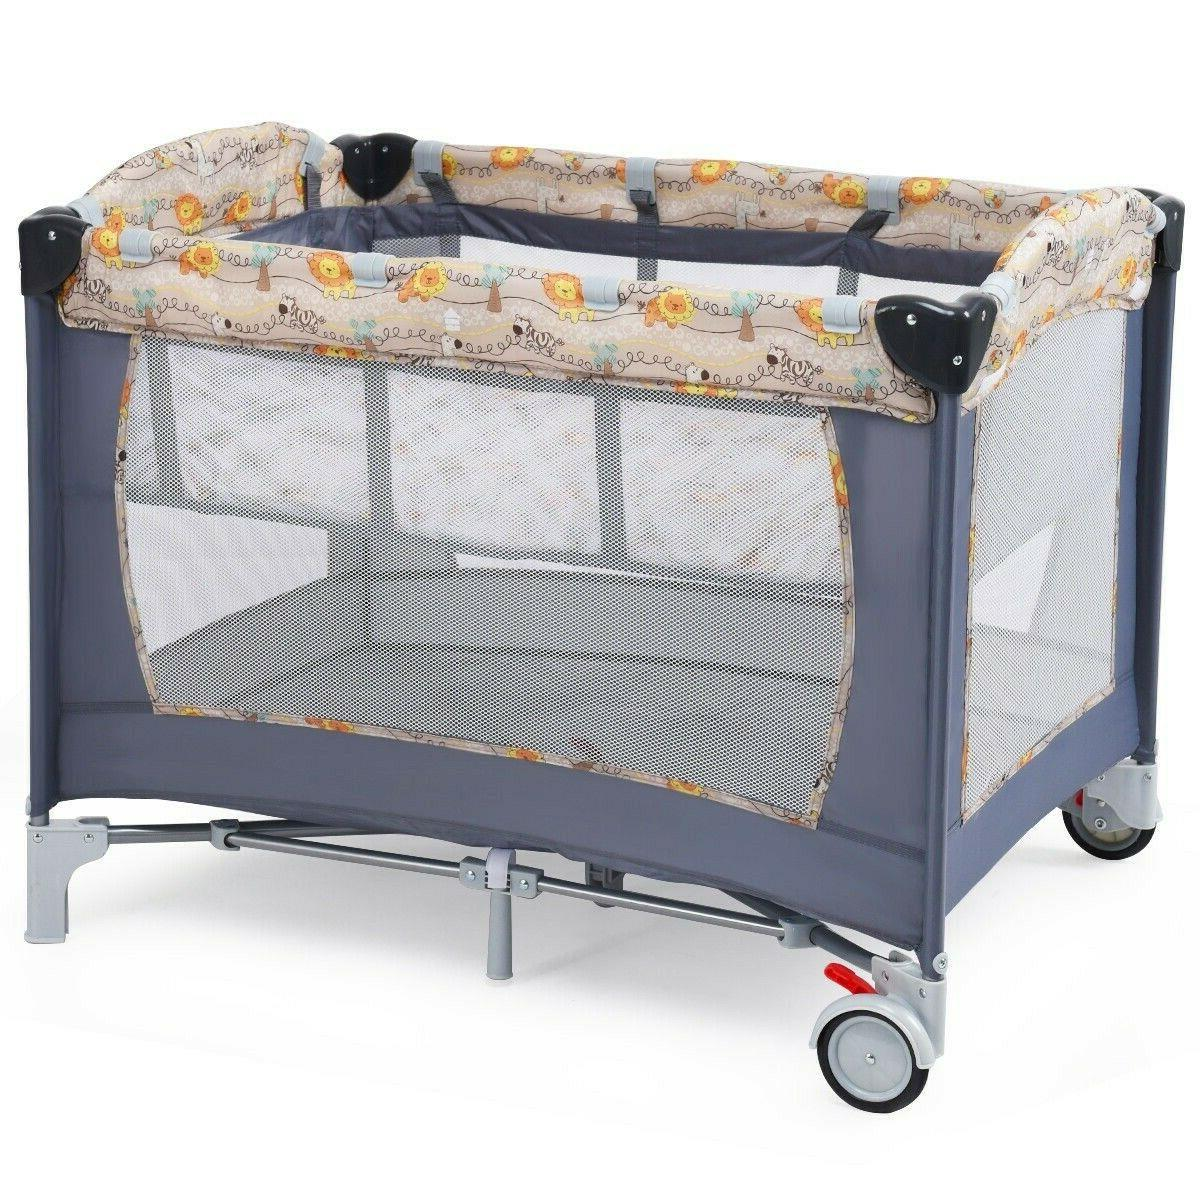 Folding Toys Portable Bed Changer